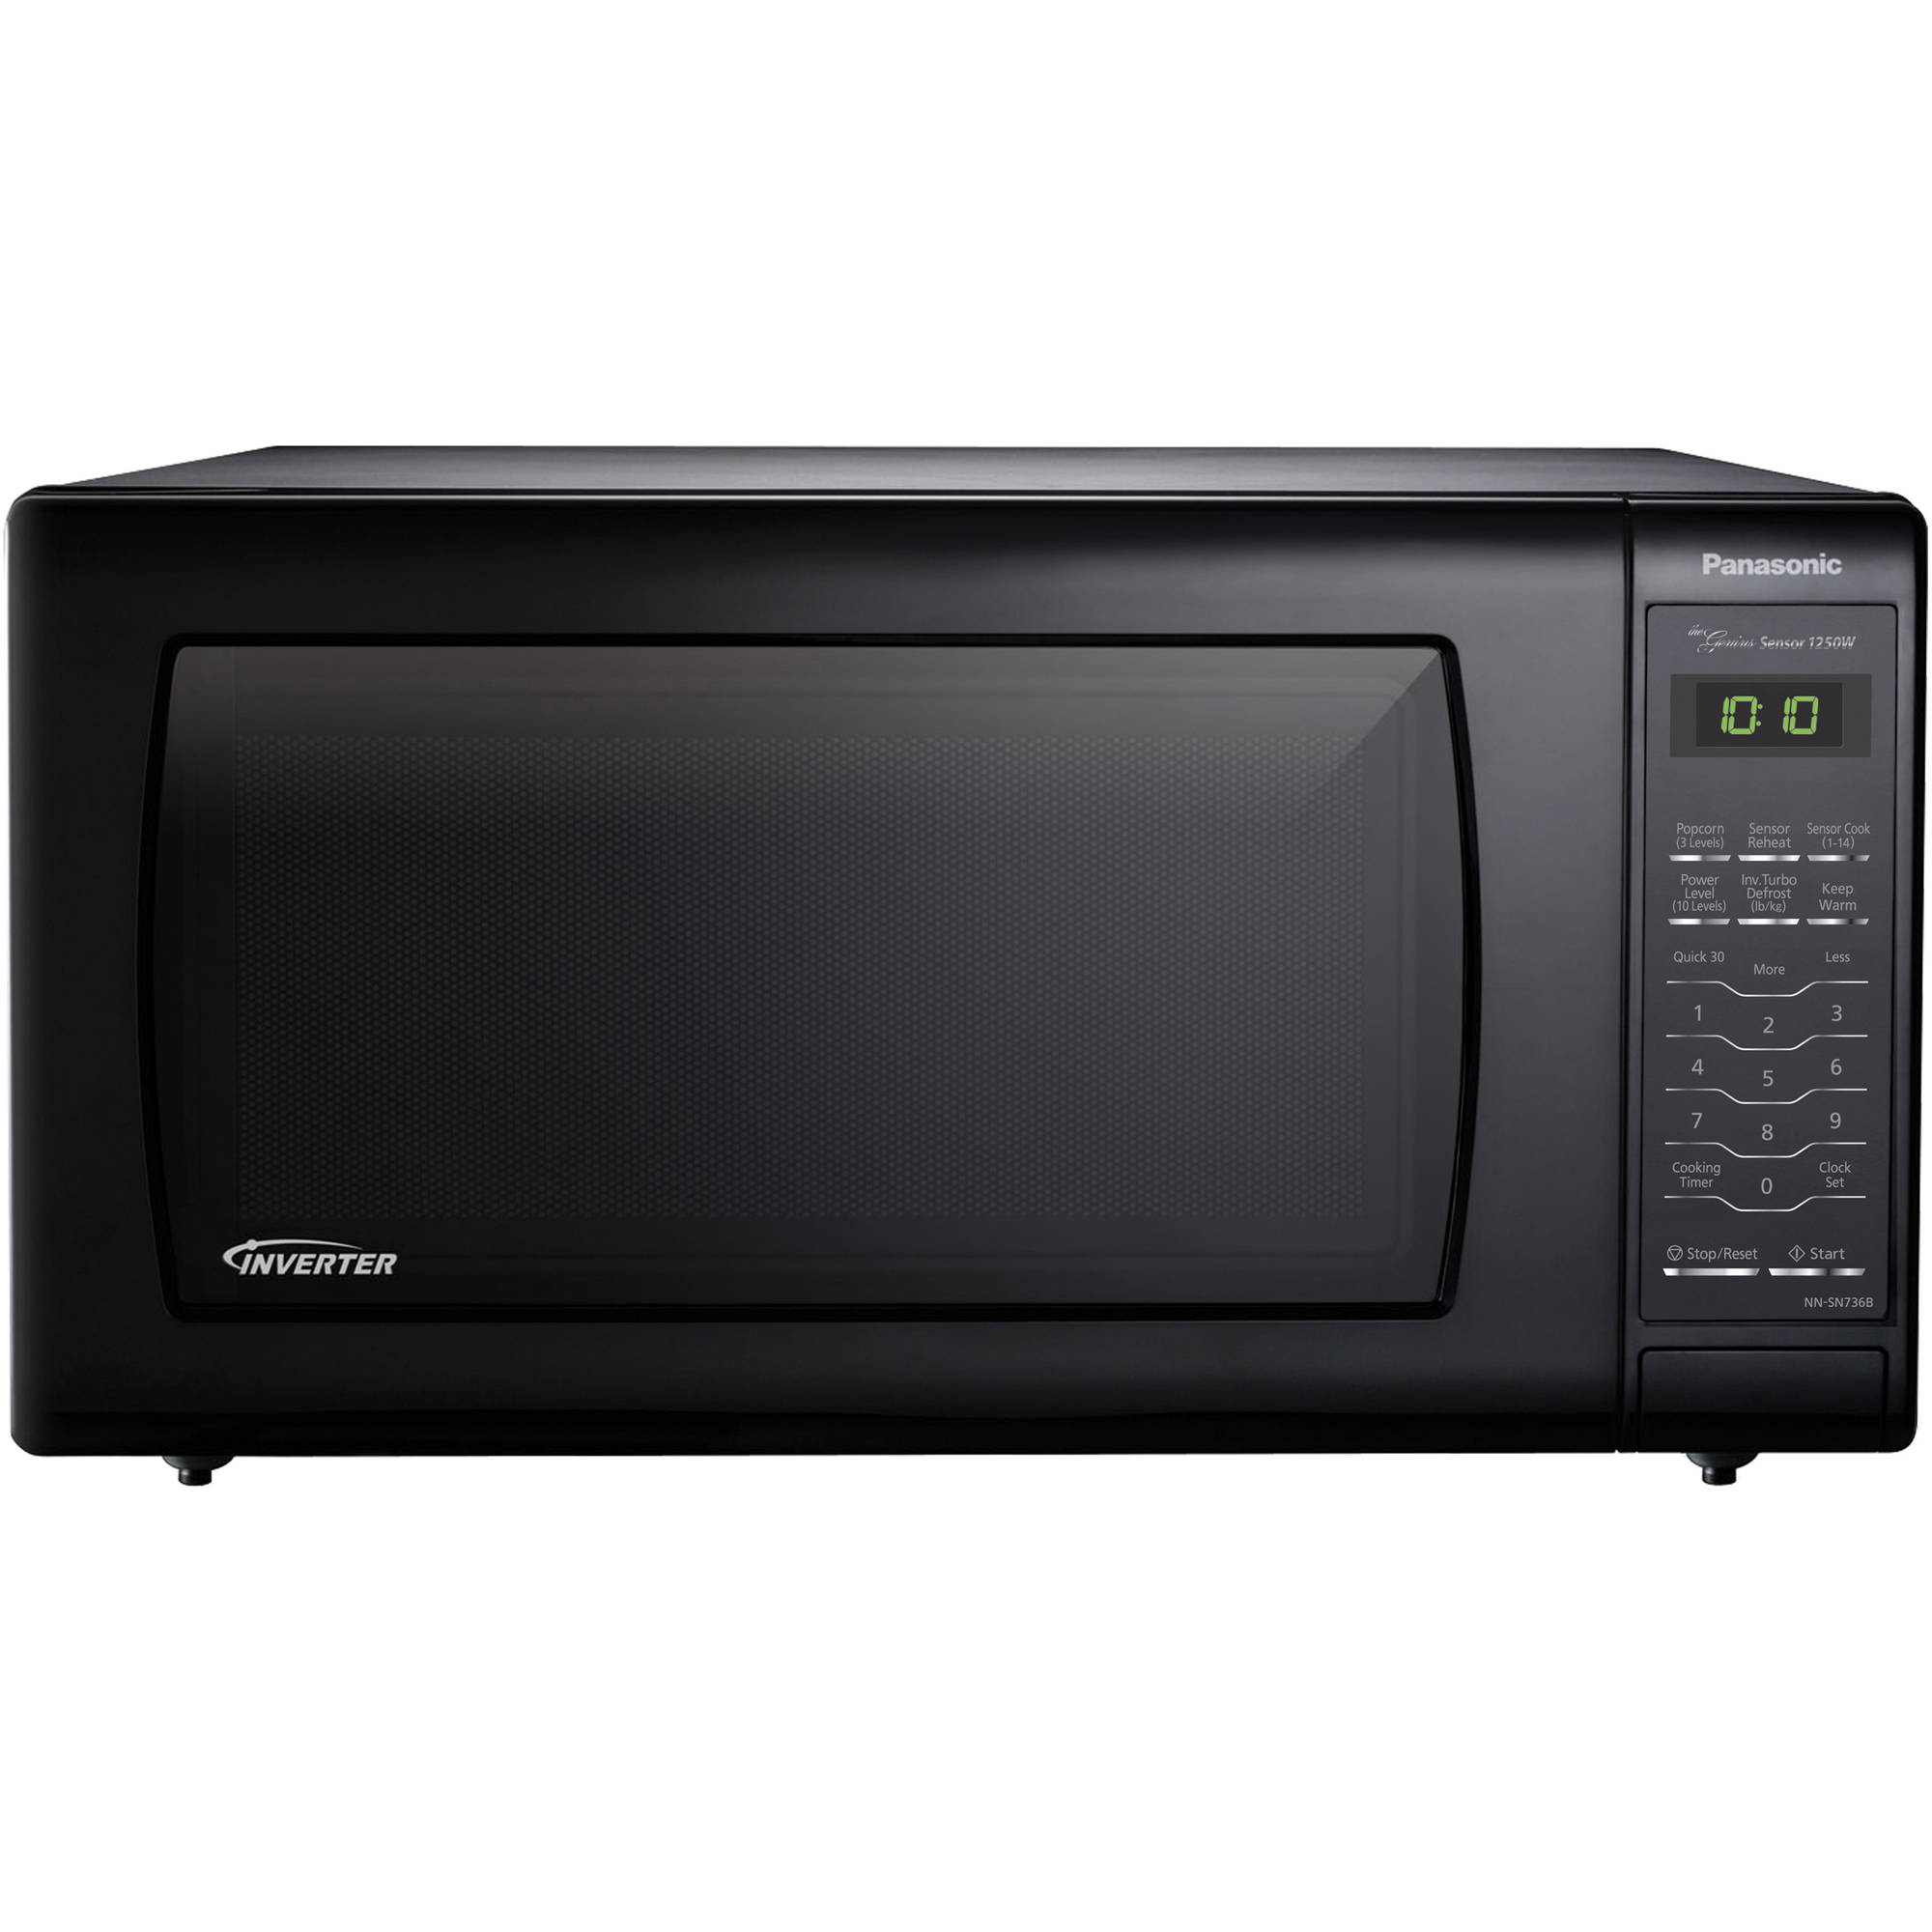 Panasonic 1.6 cu ft Microwave Oven, Black